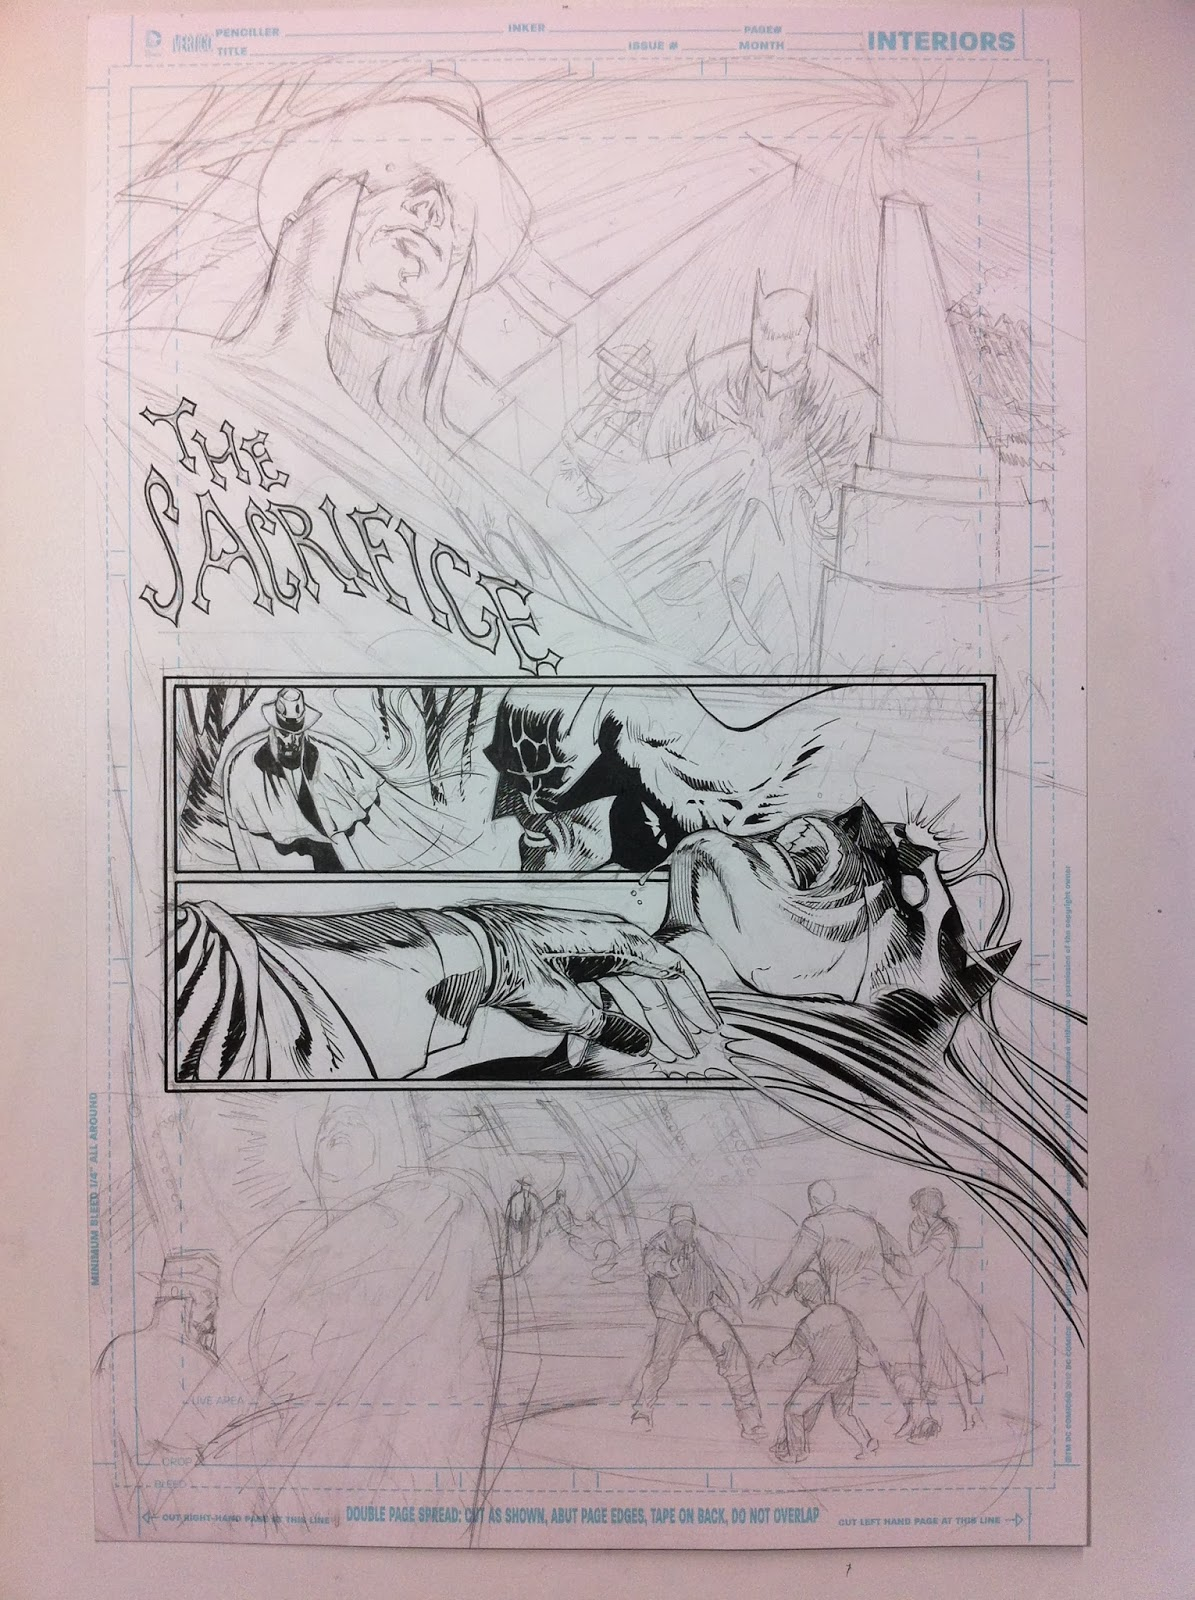 Making of a page: DETECTIVE COMICS #27 by Guillem March